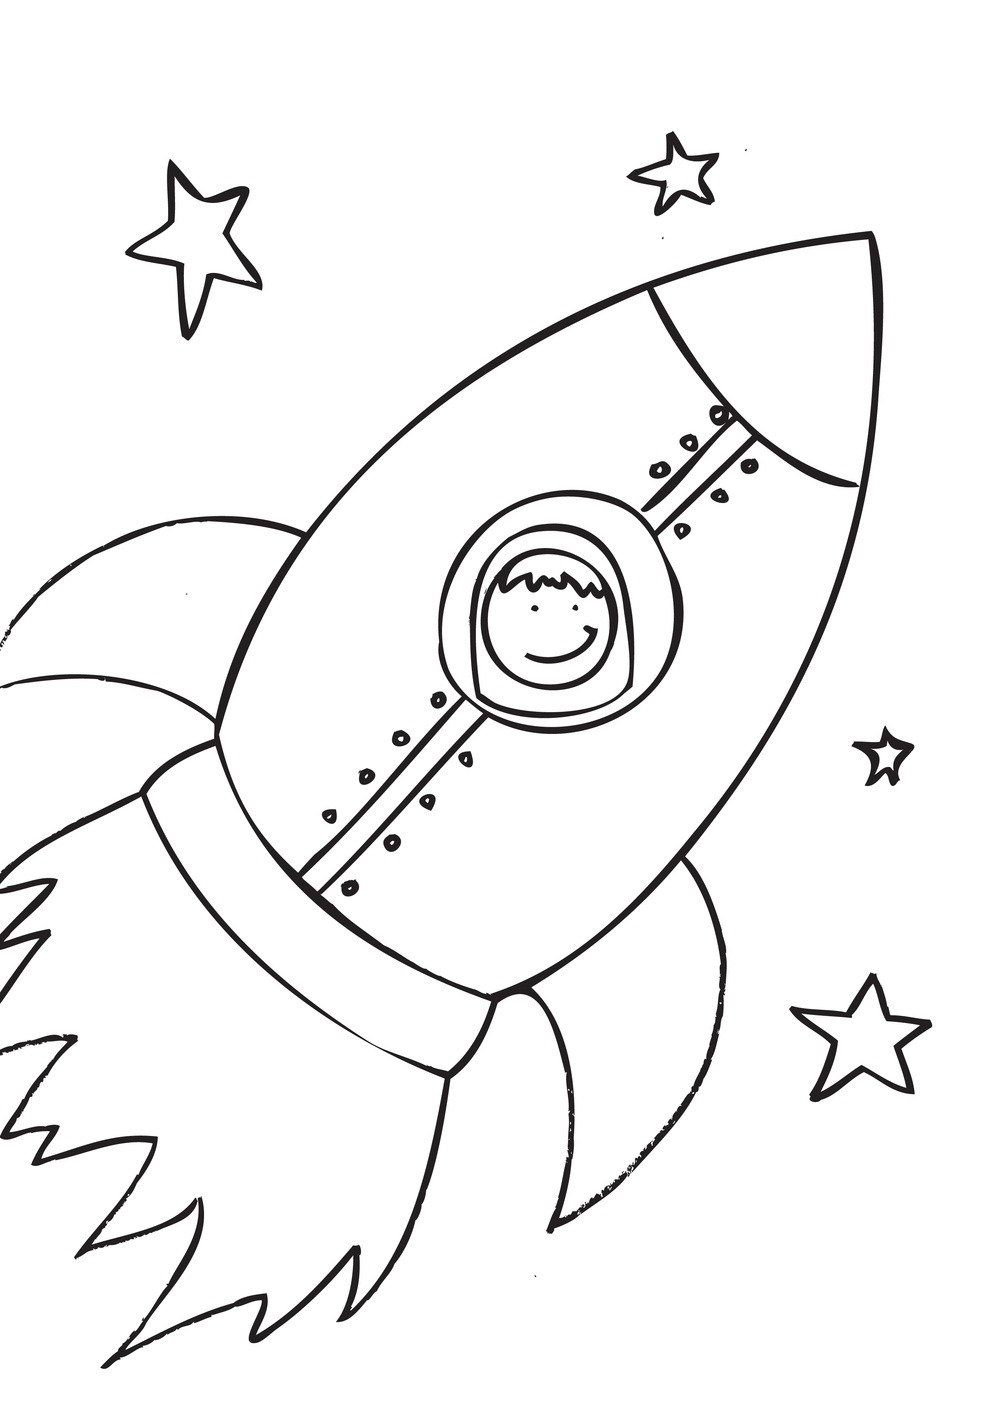 1000x1411 Free Printable Rocket Ship Coloring Pages For Kids